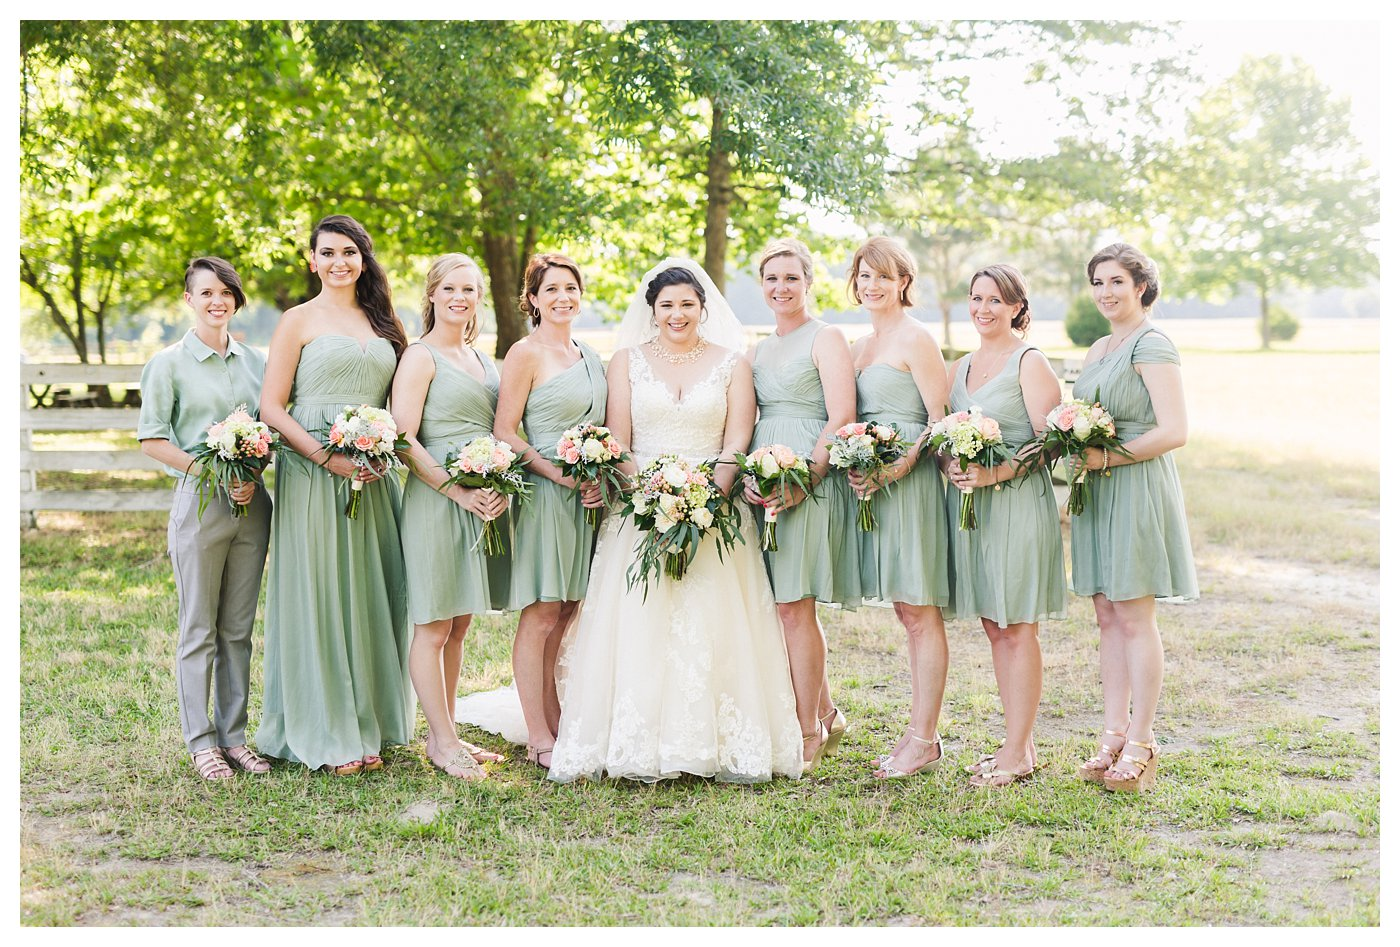 Historic_Hope_Plantation_Wedding_Photography_Sage_Summer_Outdoor_Windsor_NC_0017.jpg